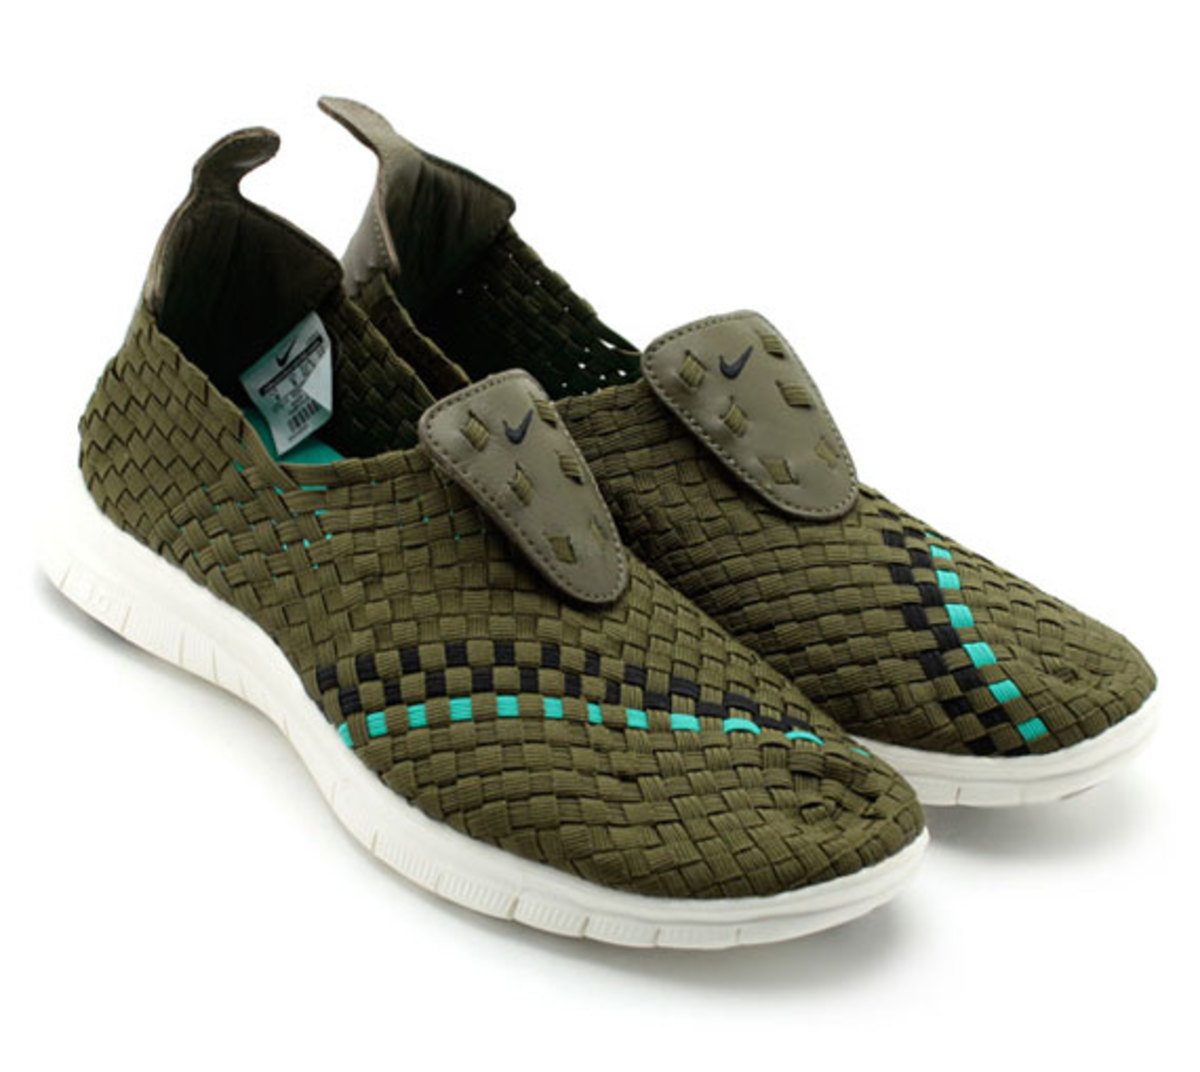 nike-free-woven-spring-2013-colorway-preview-05